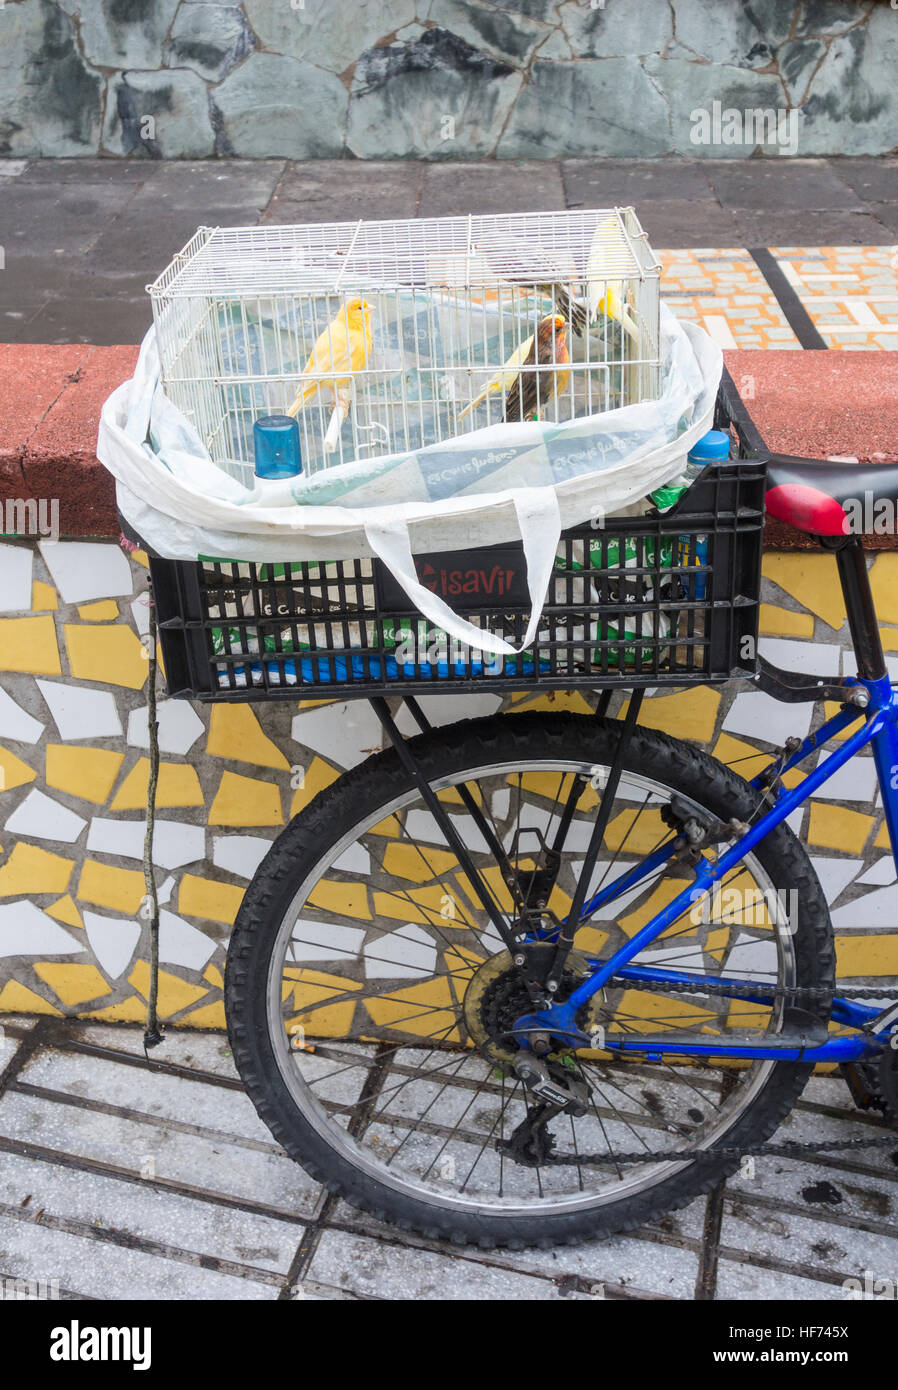 Canary seller with birds in cage on back of bike outside city indoor market in Las Palmas, Gran Canaria, Canary - Stock Image